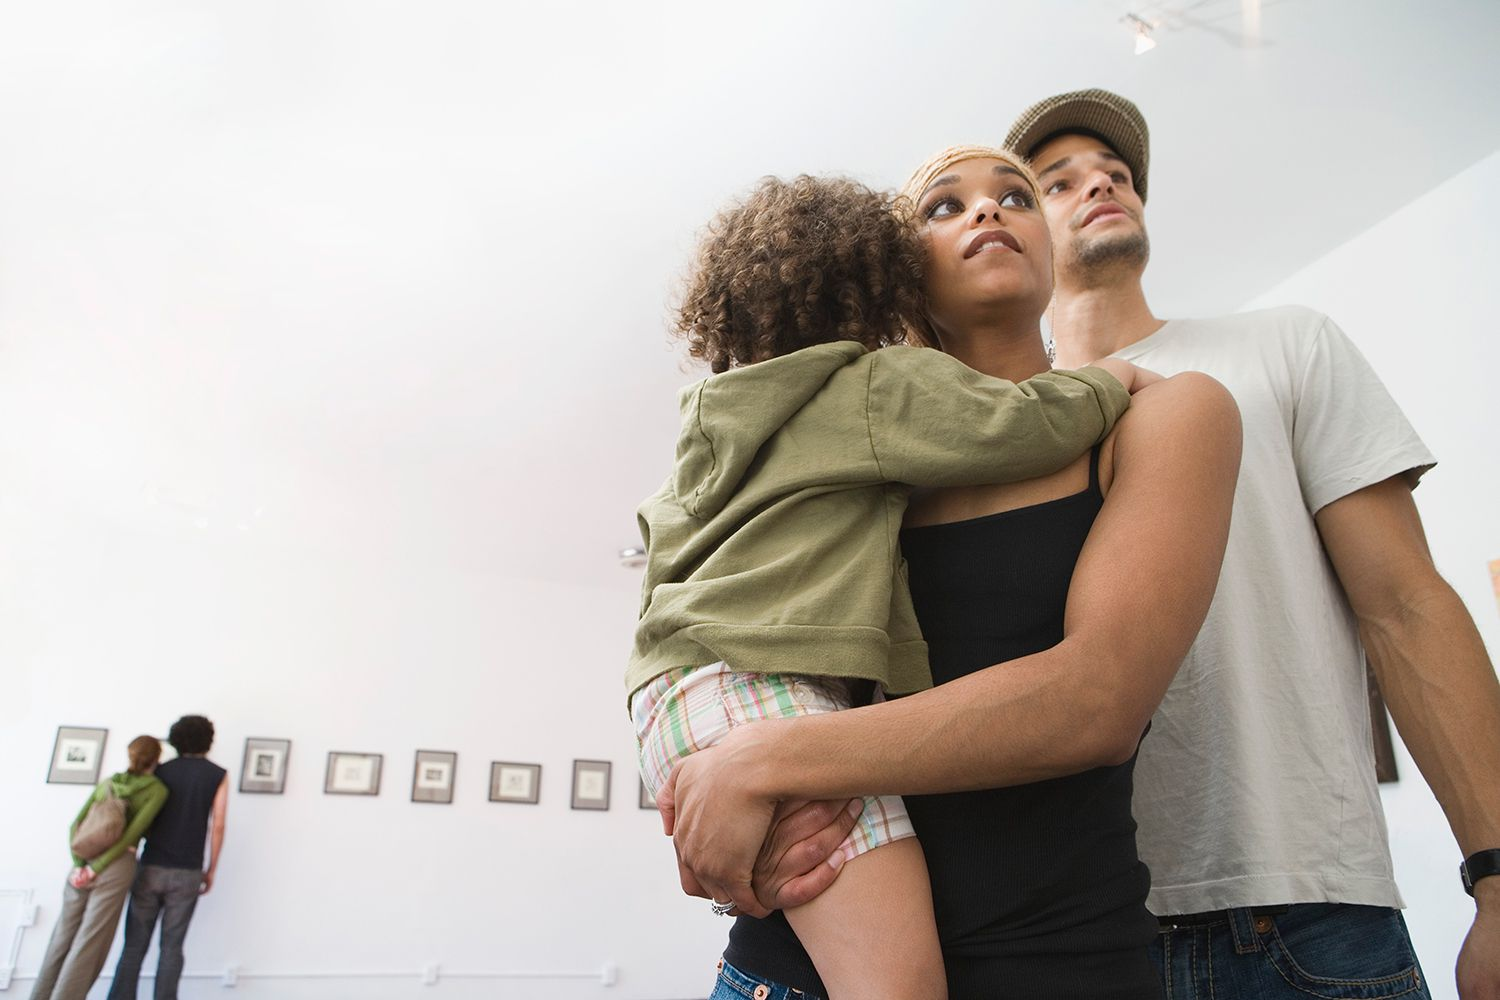 Couple with child at museum